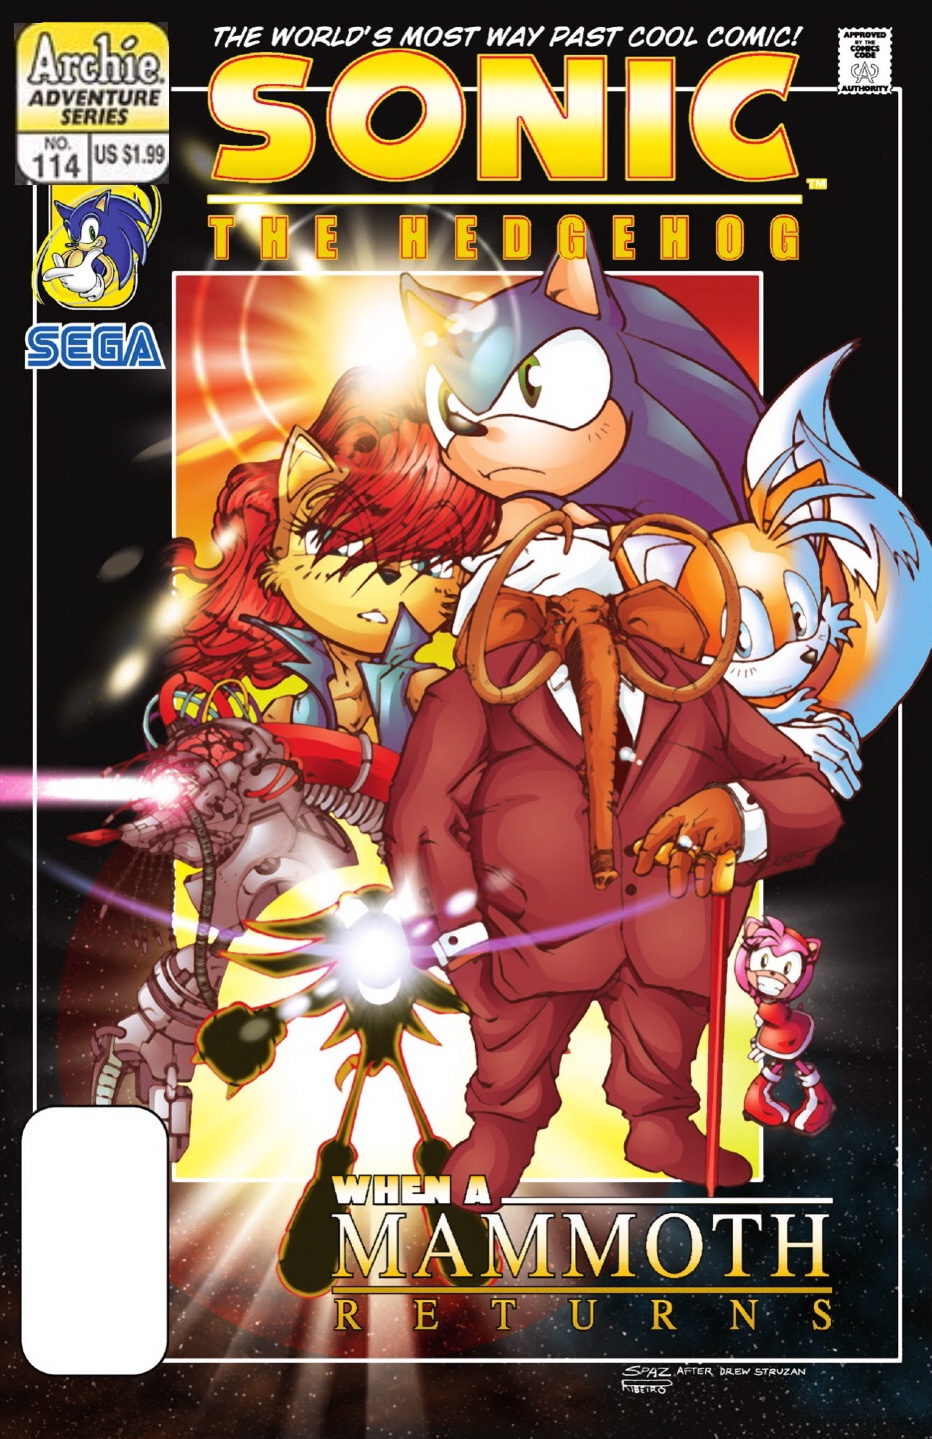 Archie Sonic the Hedgehog Issue 114